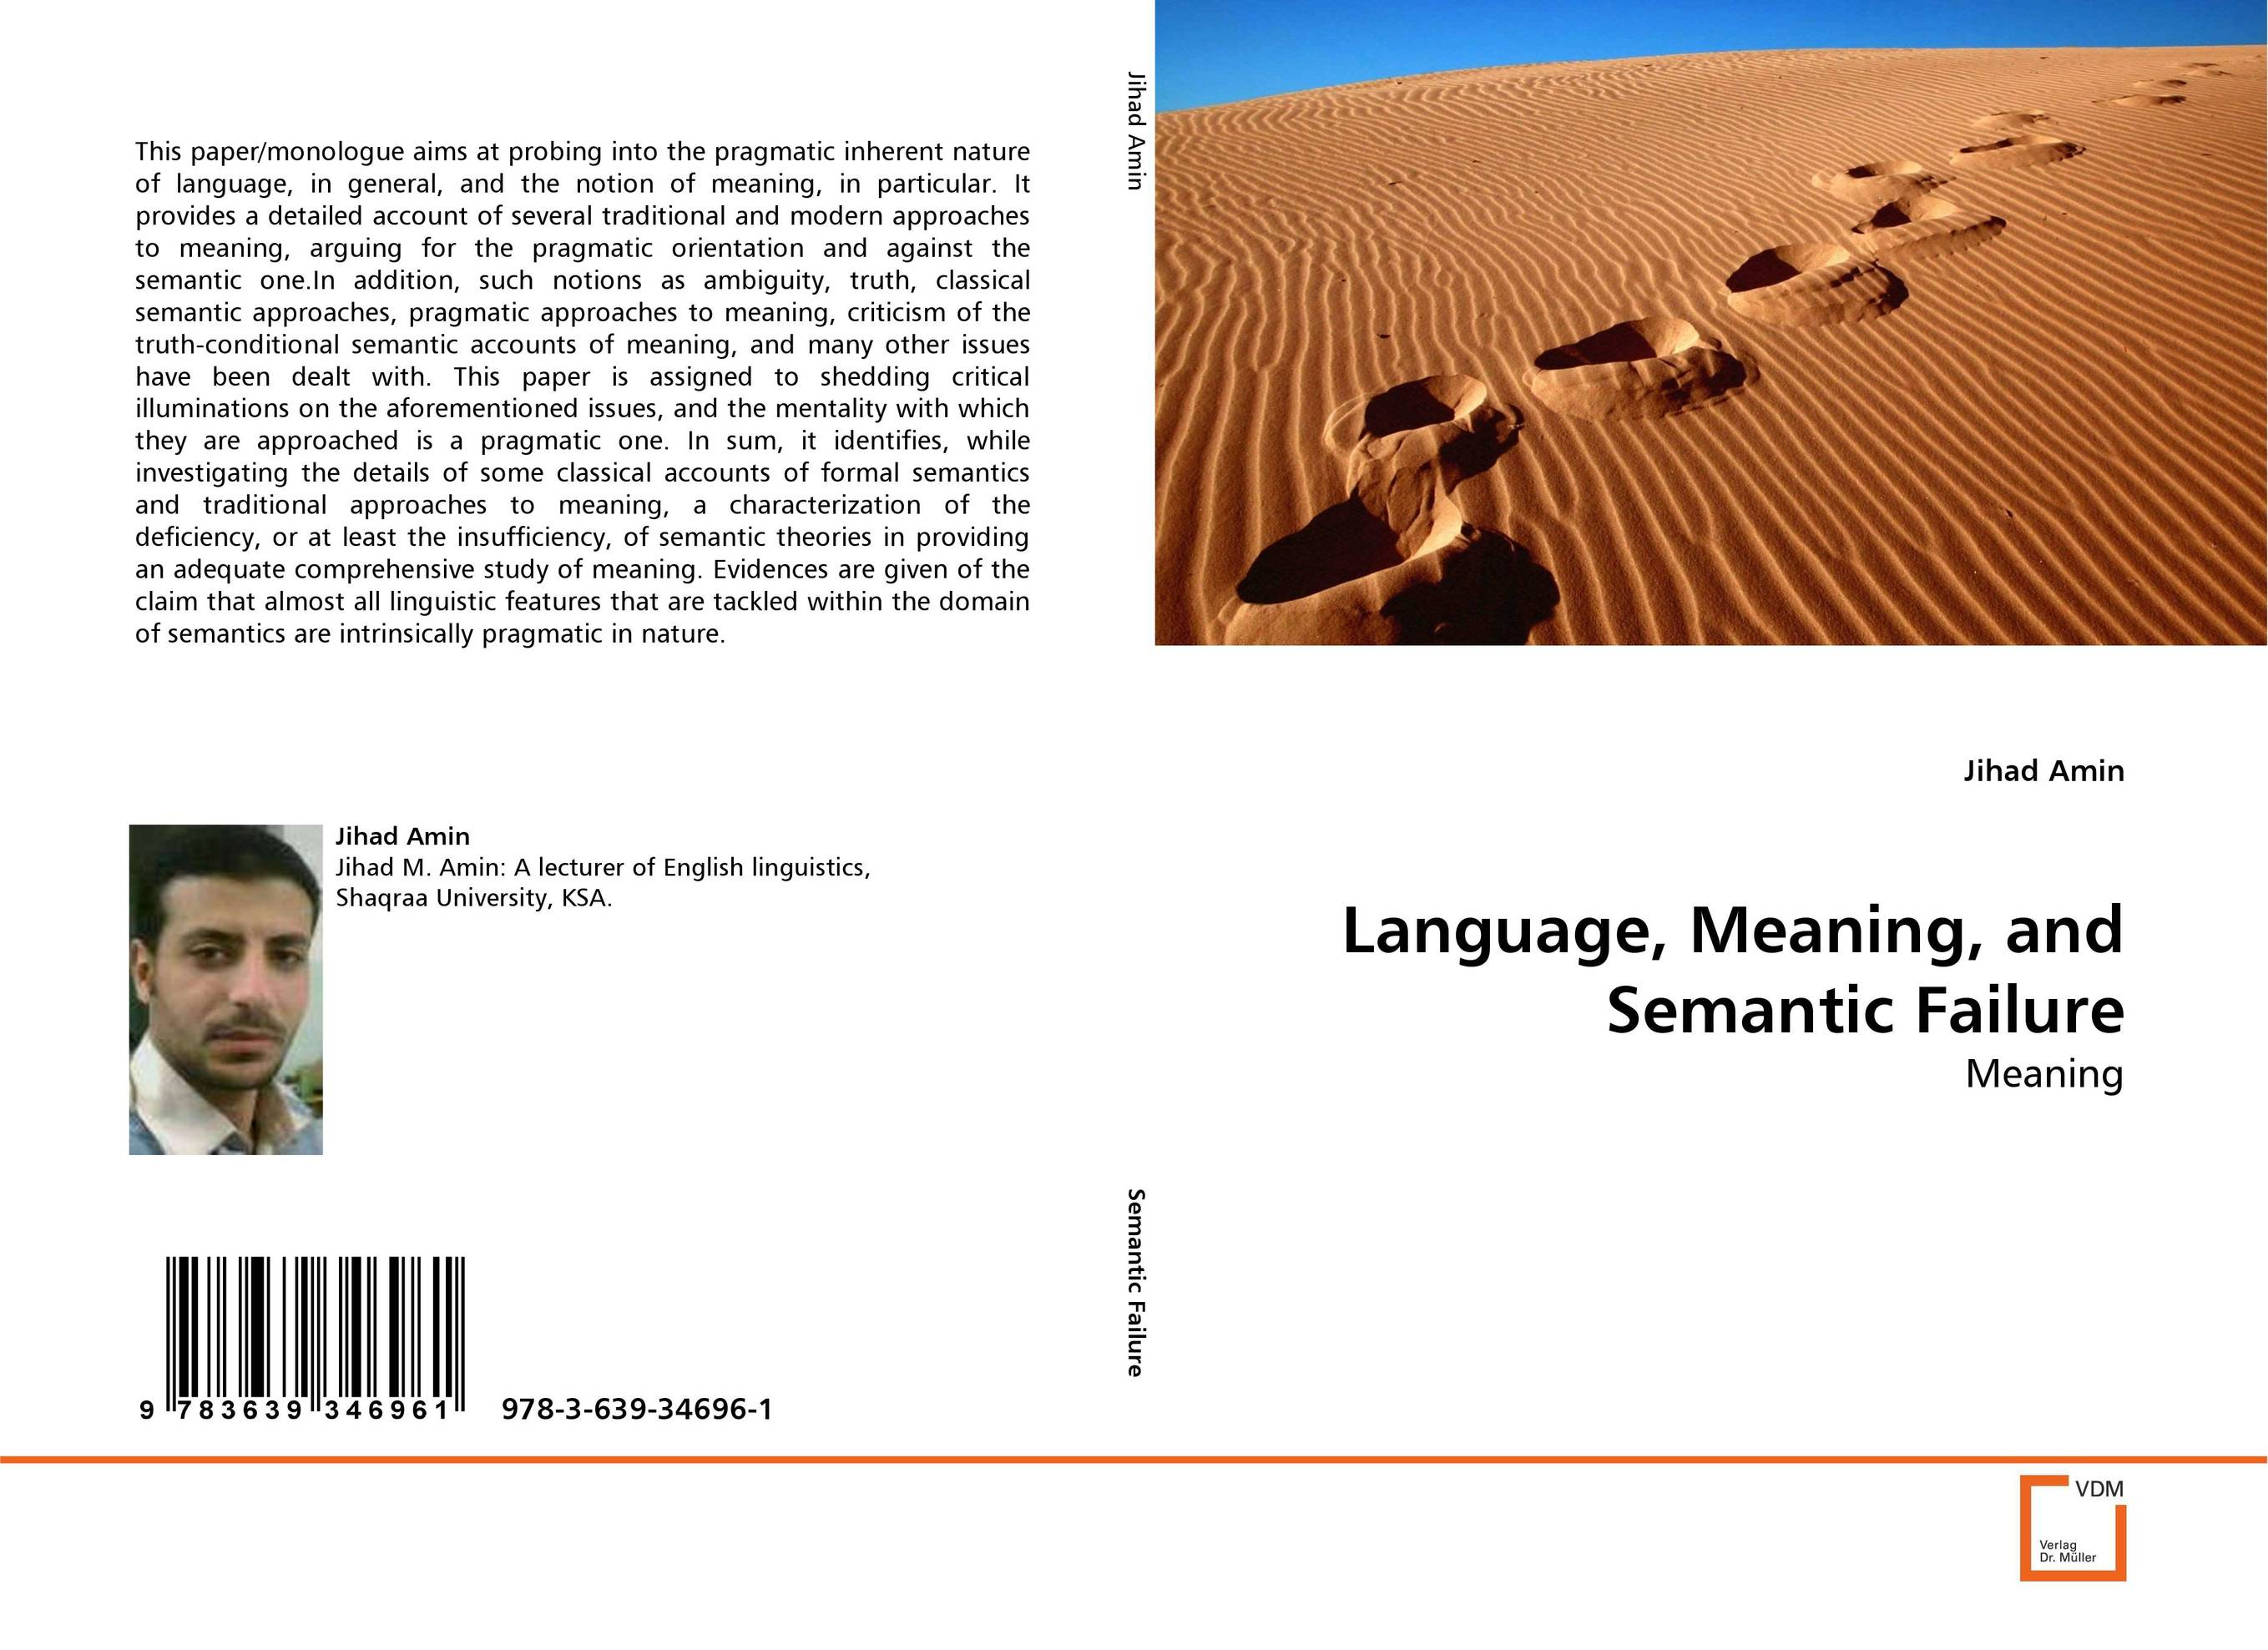 Language, Meaning, and Semantic Failure frank lloyd wright and the meaning of materials